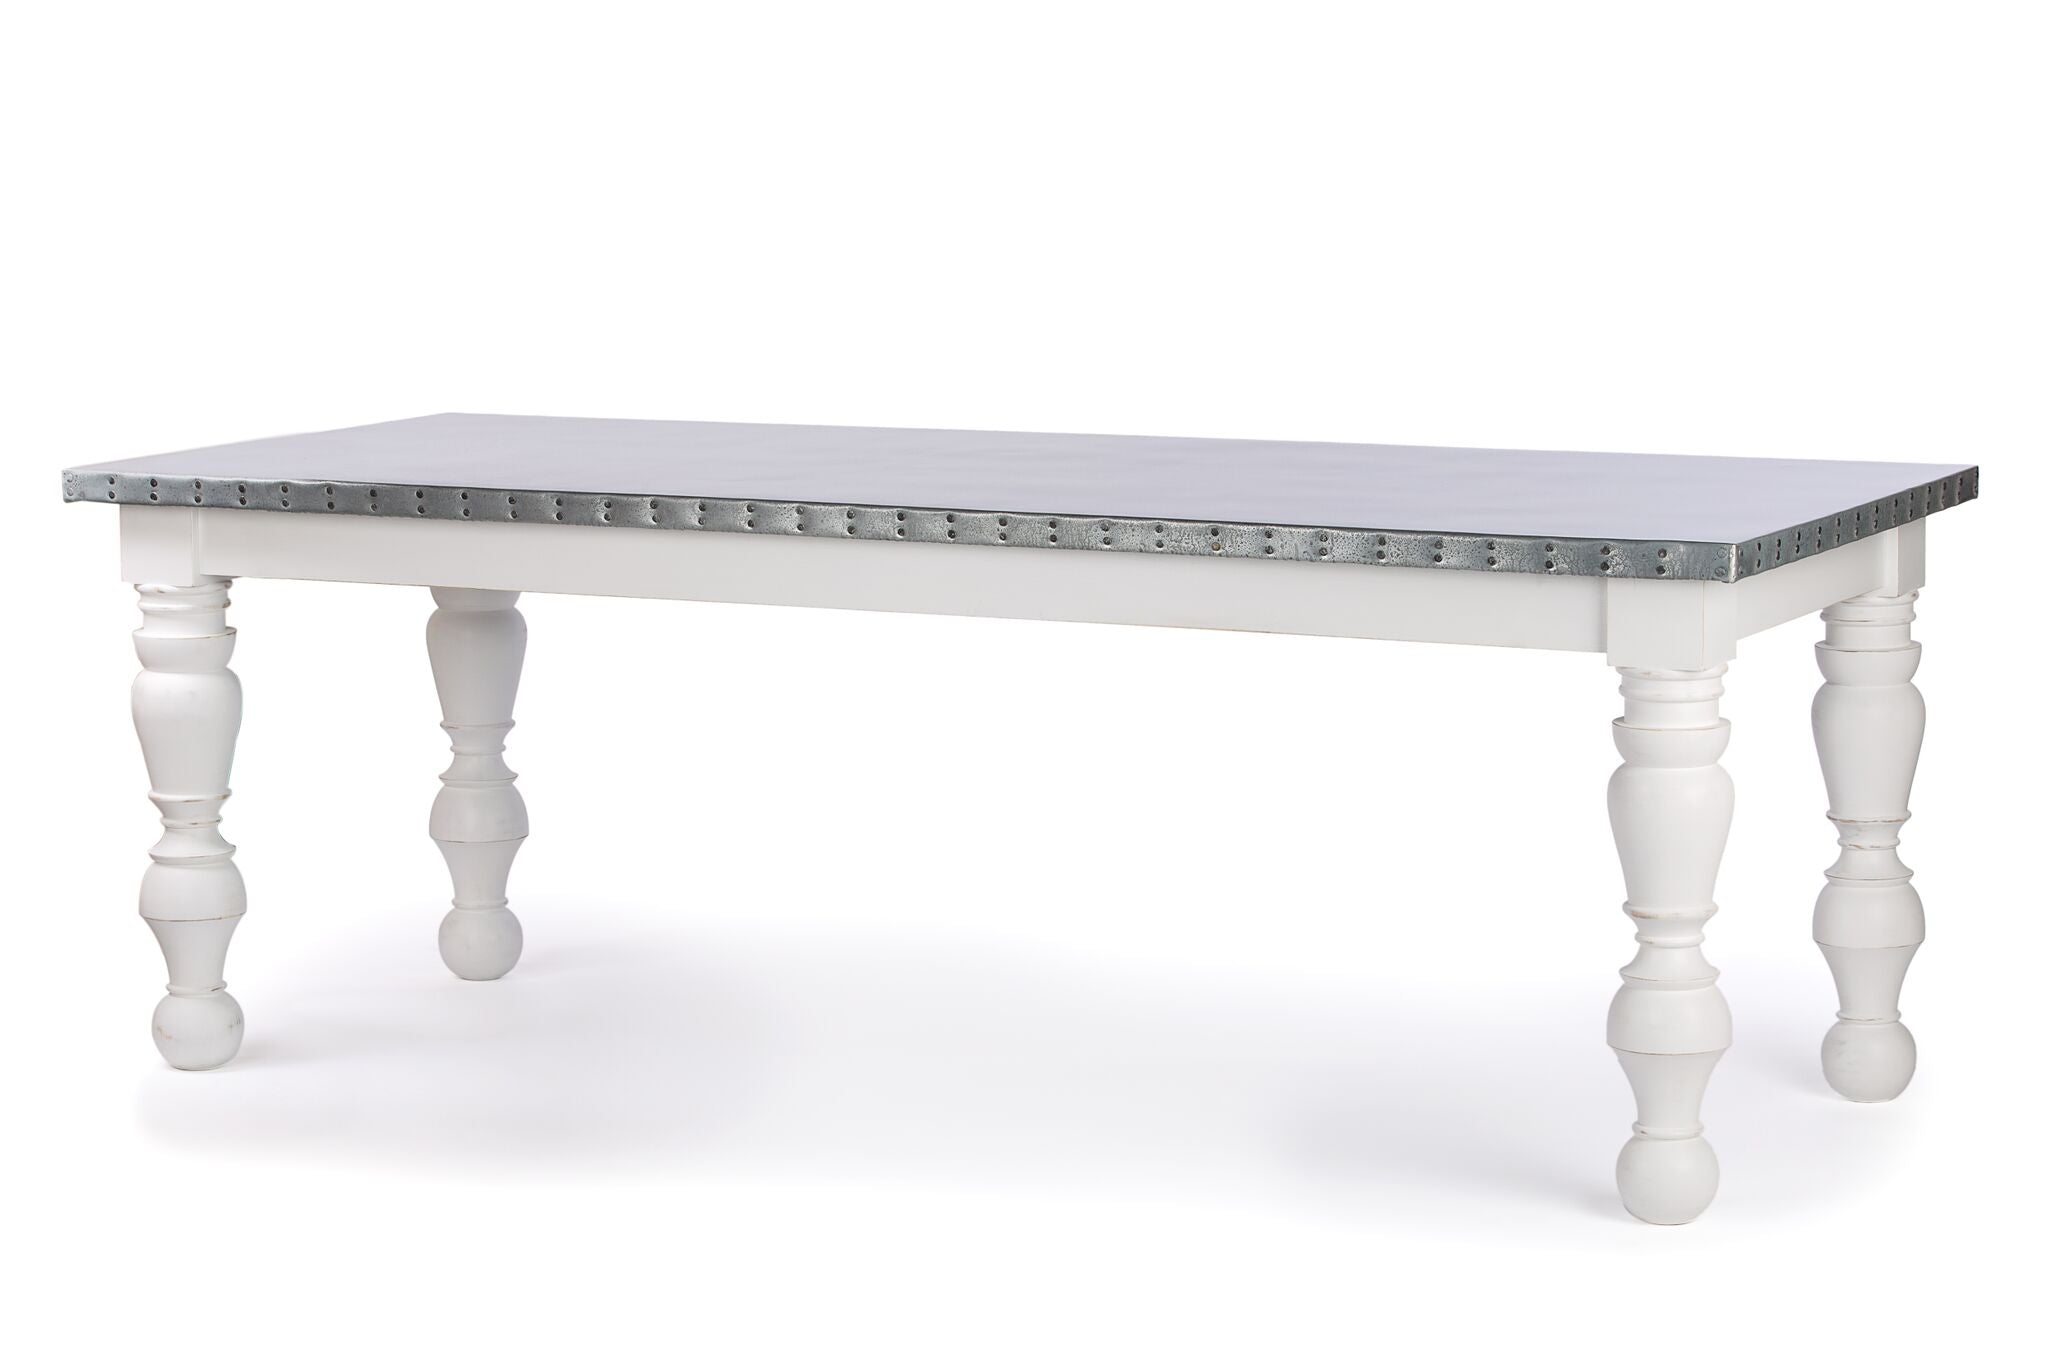 "Zinc Rectangular Table | Dauphine Table | CLASSIC | Black | CUSTOM SIZE 96""L 39""W 30""H 